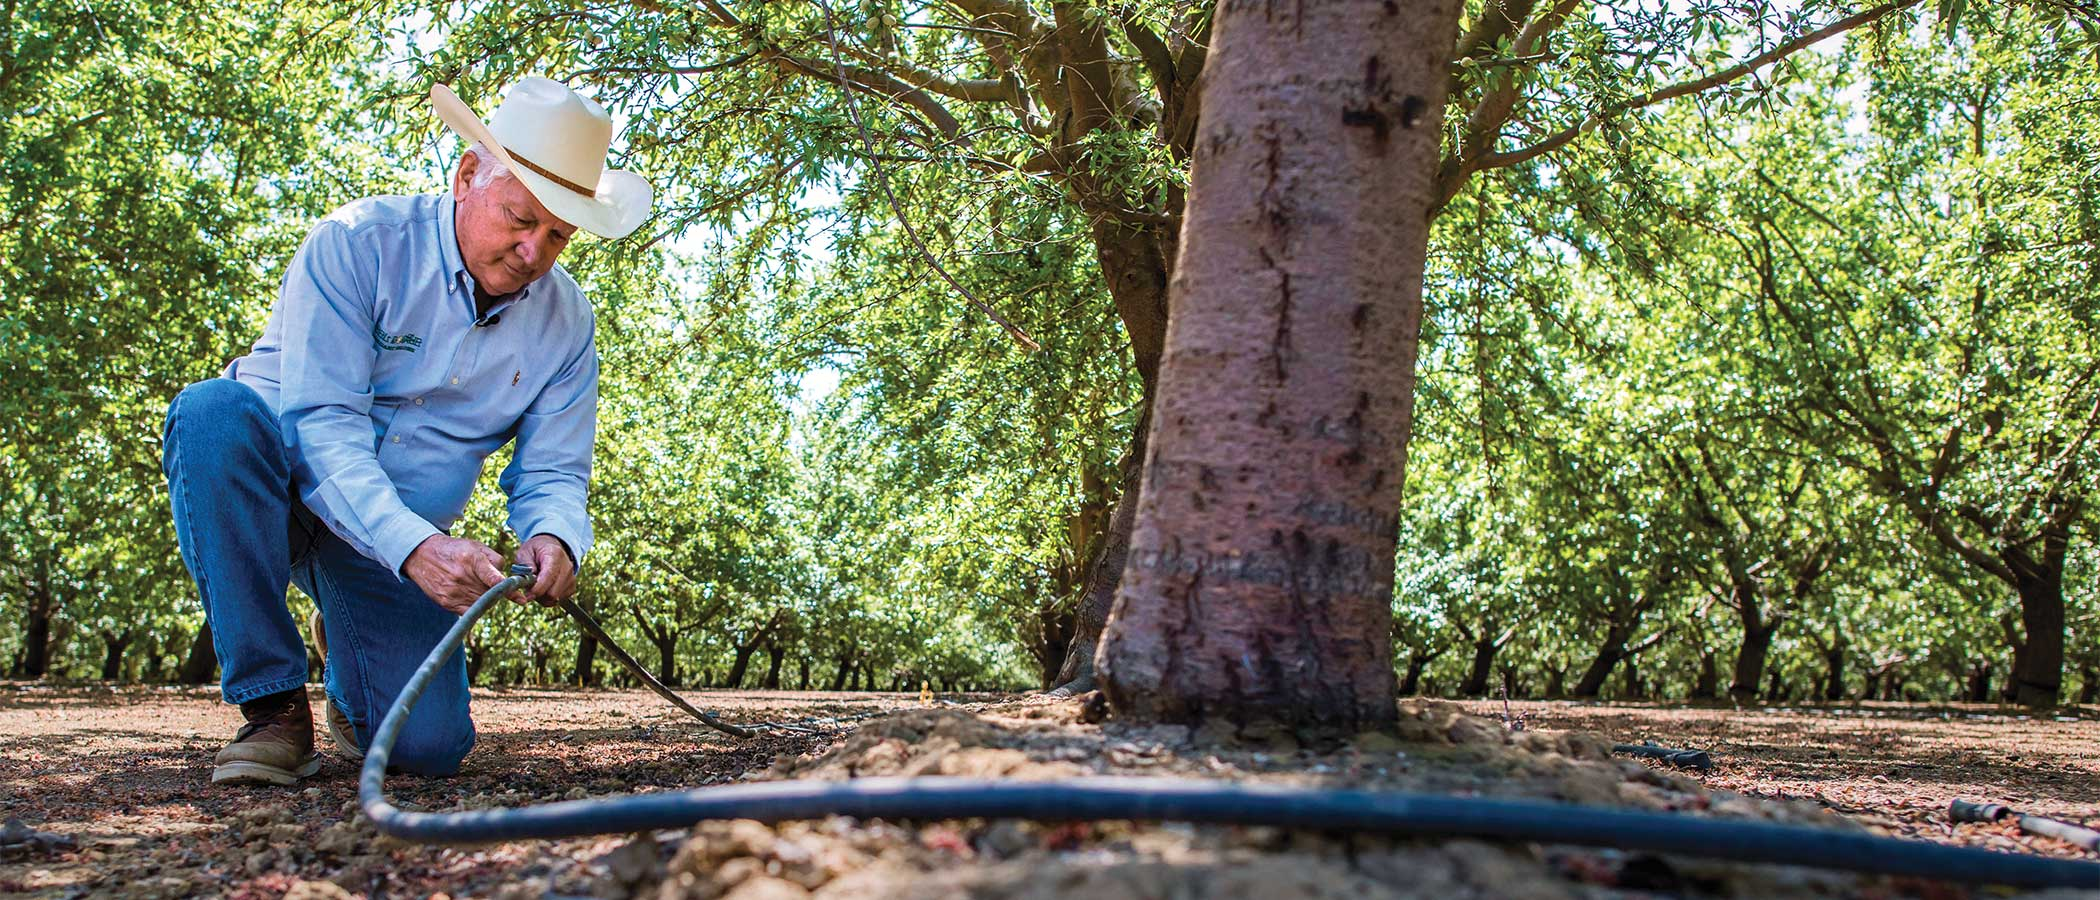 Joe Del Bosque, president of Del Bosque Farms, Inc., inspects a water hose used for drip irrigation in his almond orchard in Firebaugh, California.